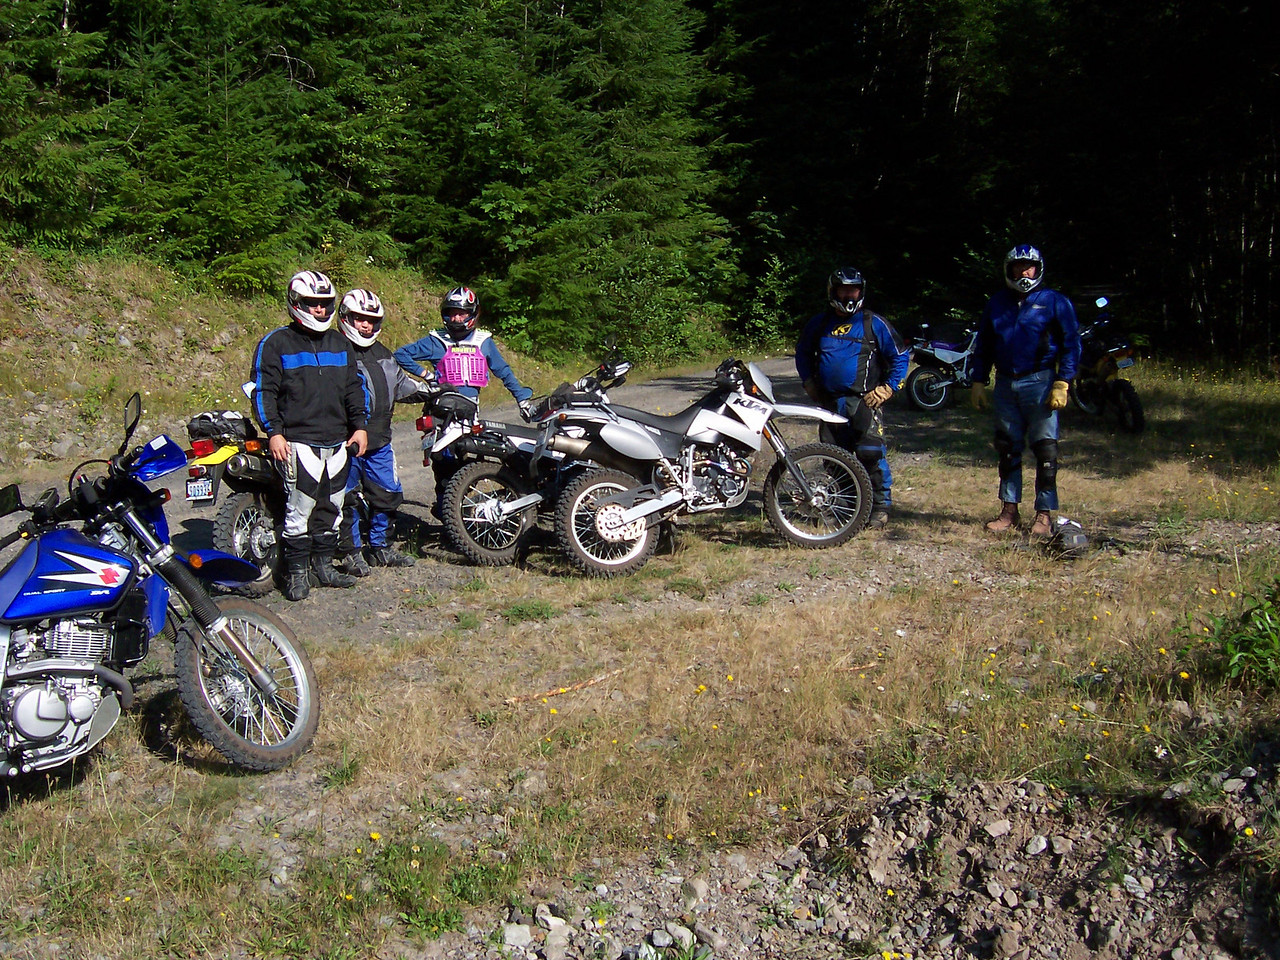 Saturday we did a Dual Sport ride.